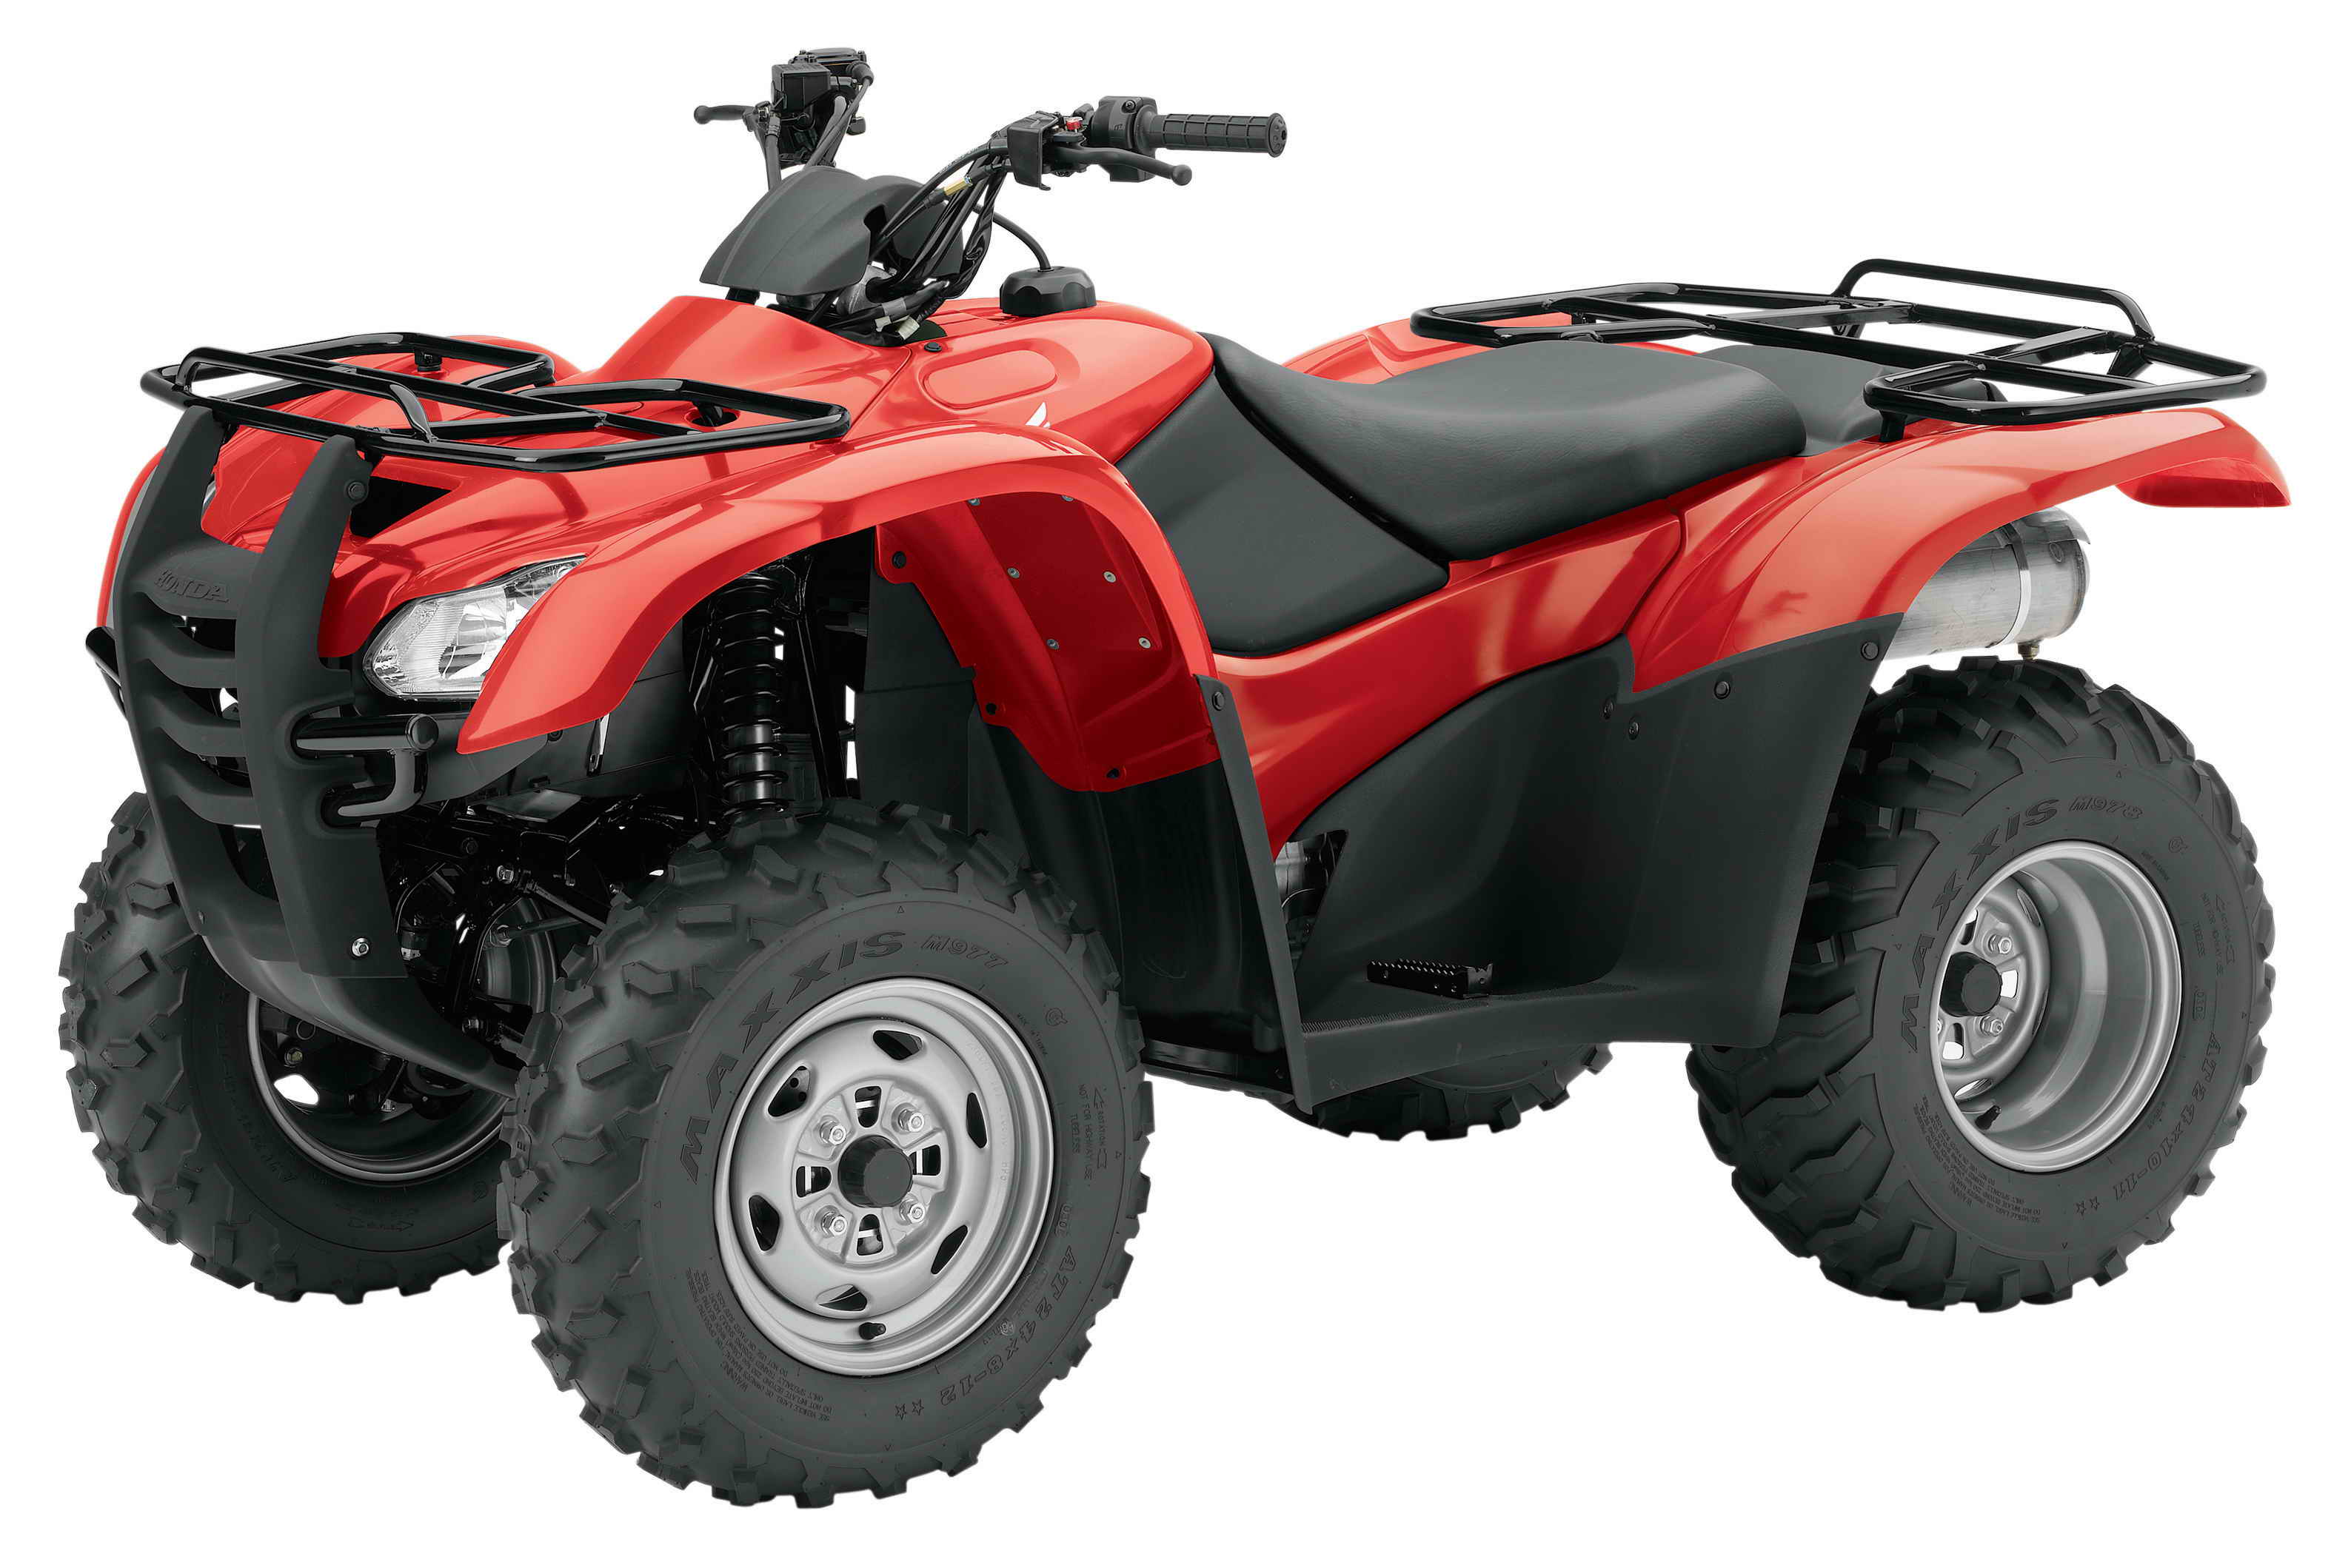 2007 Honda FourTrax Rancher | Top Speed. »